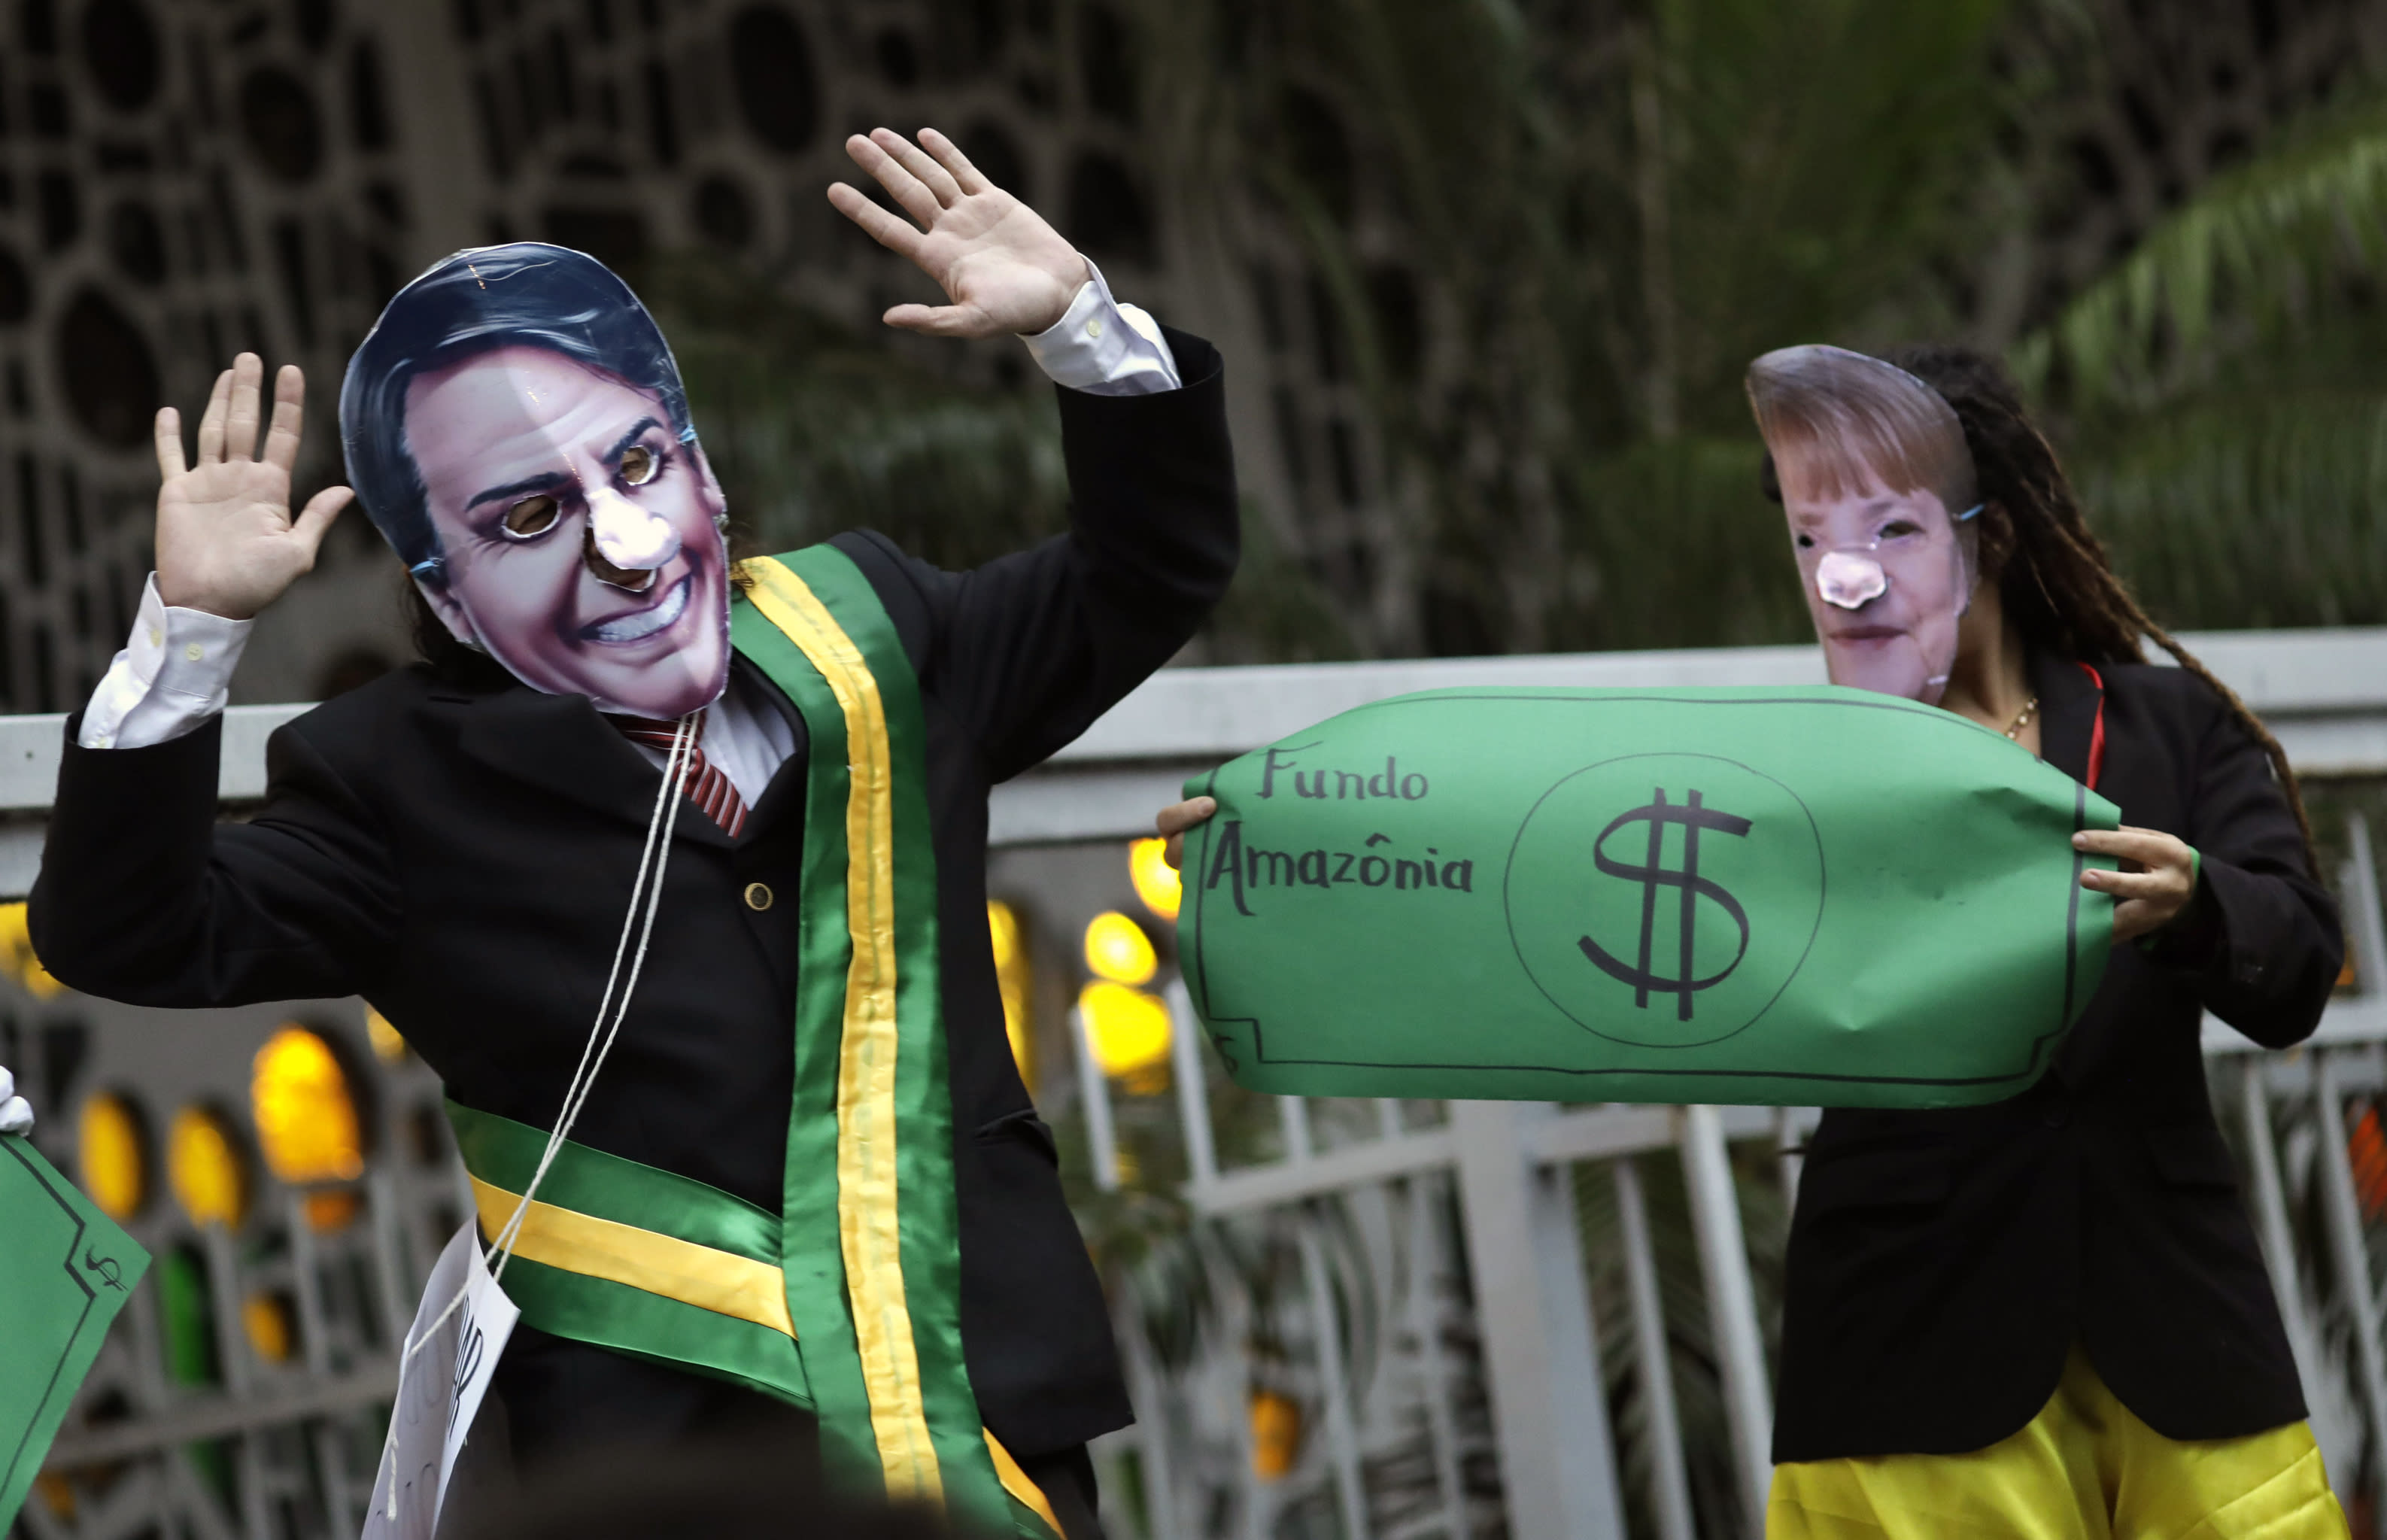 Demonstrators wear masks of Brazil's President Jair Bolsonaro, left, and Germany's Chancellor Angela Merkel during a protest in defense of the Amazon in Rio de Janeiro, Brazil, Thursday, Sept. 5, 2019. Germany has suspended a line of funding for Amazon projects. (AP Photo/Silvia Izquierdo)